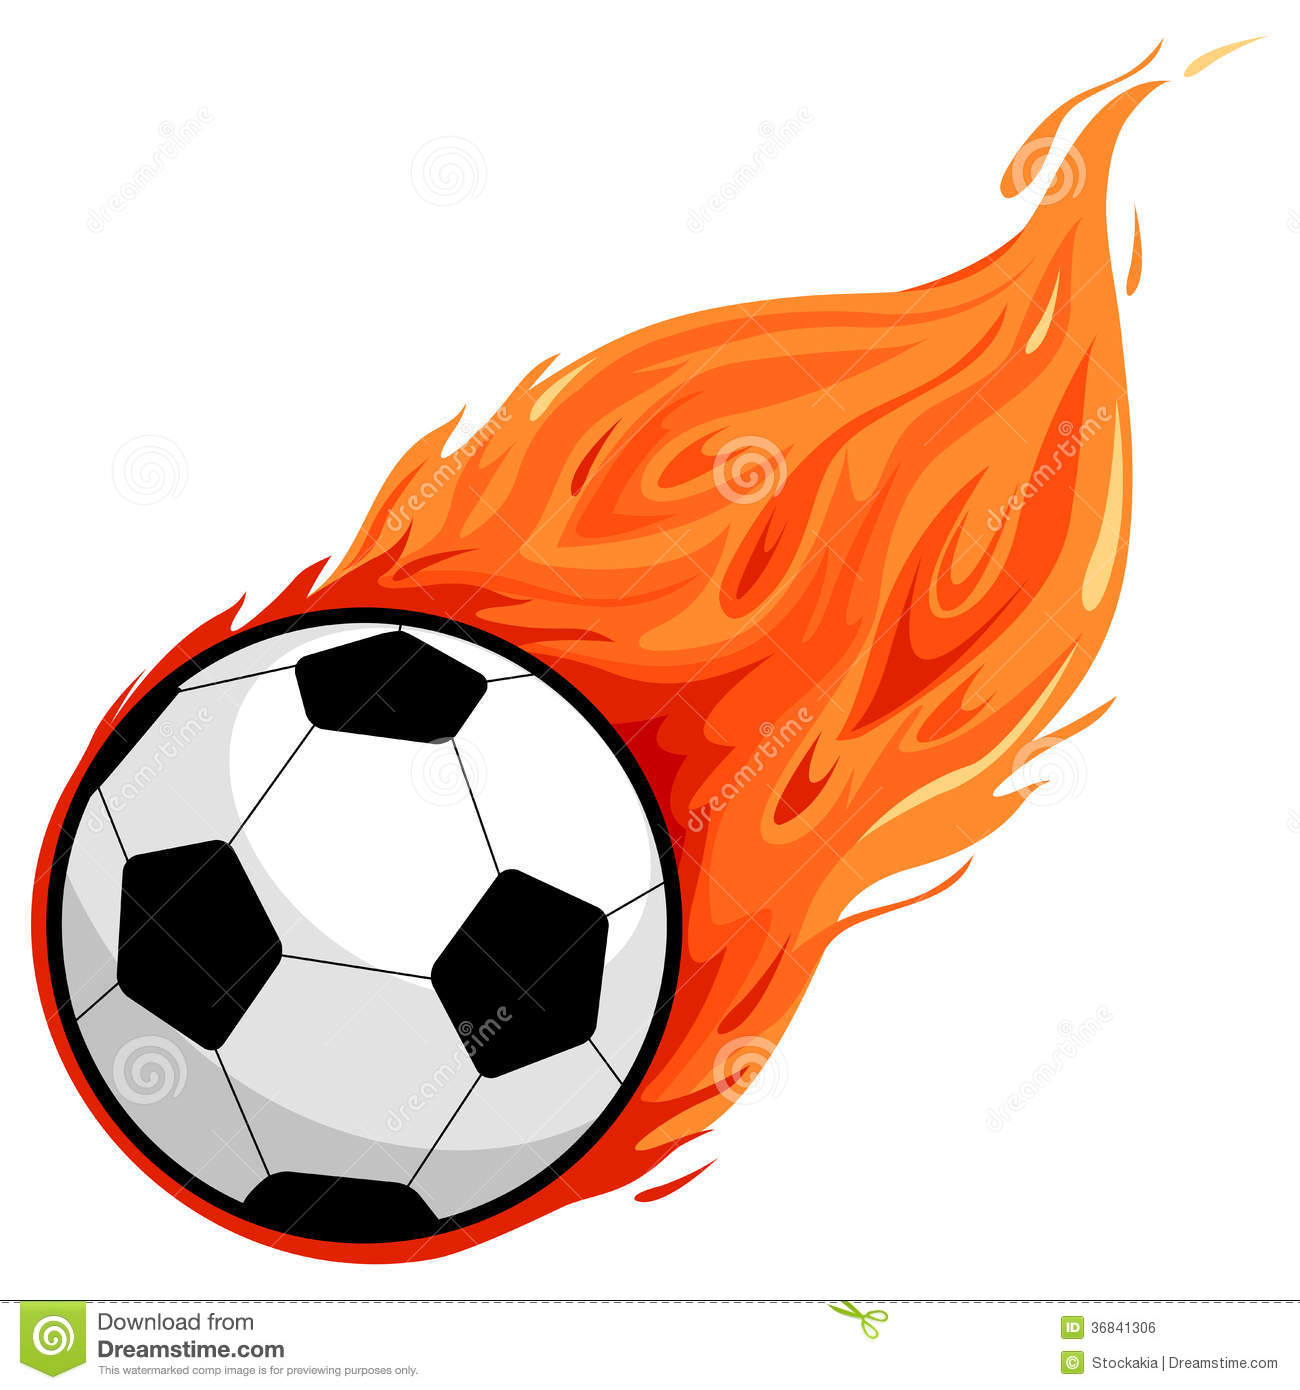 Clipart Soccer Ball With Flames.